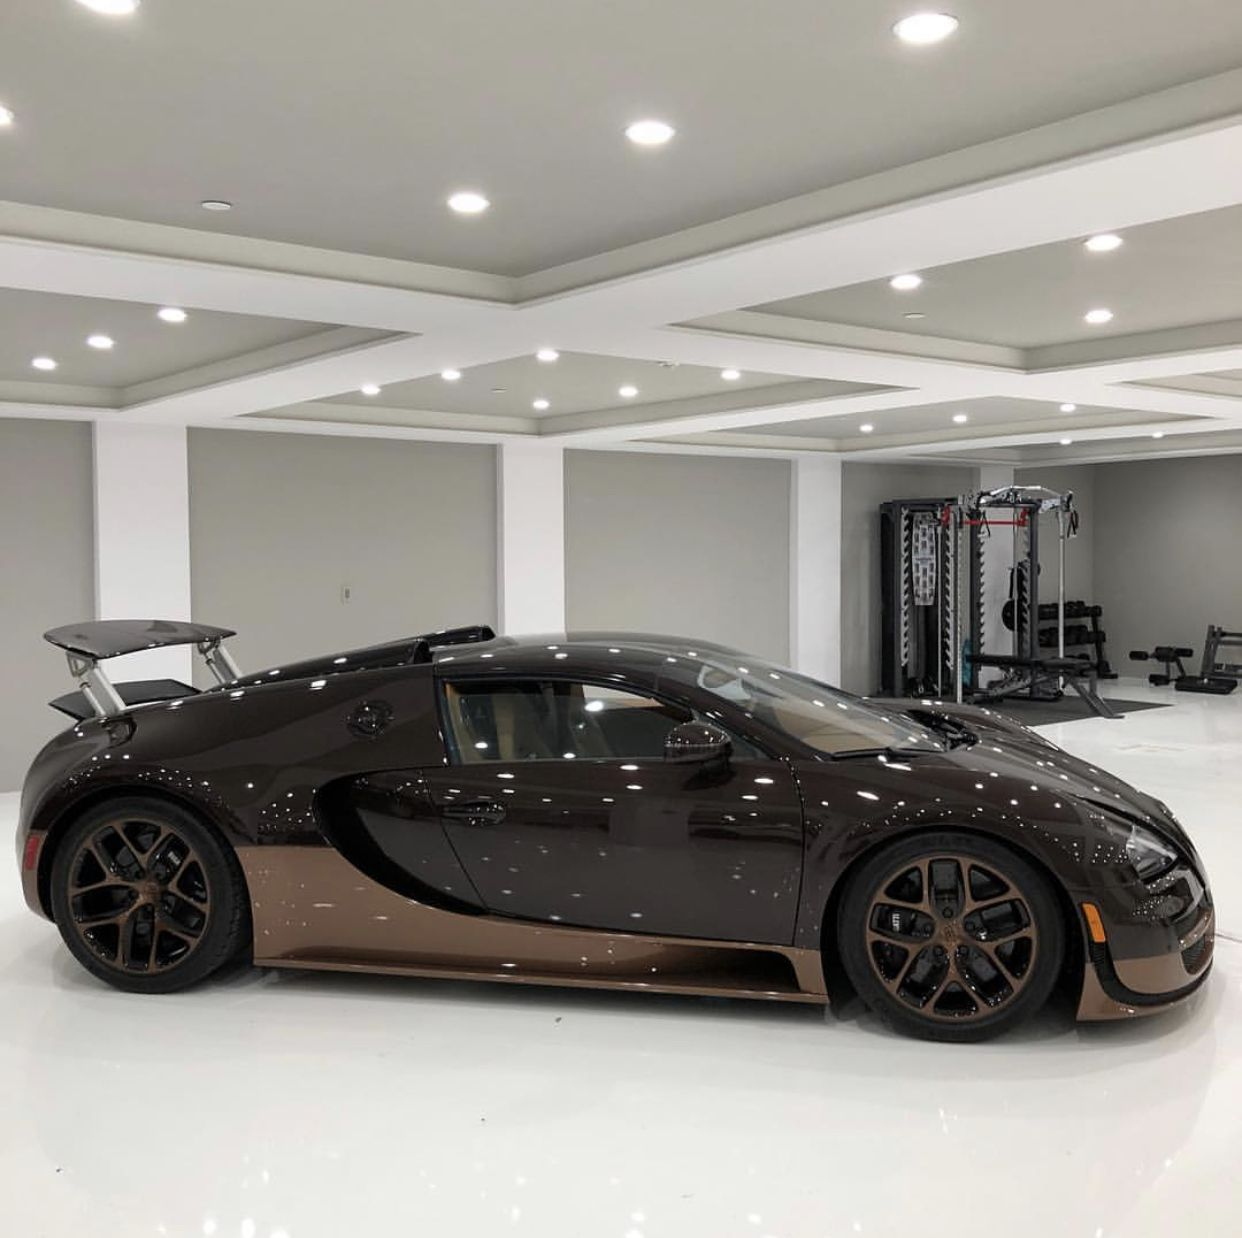 Bugatti Veyron Grand Sport Vitesse Painted In Black And: Bugatti Grand Sport Vitesse In Fully Exposed Brown Carbon